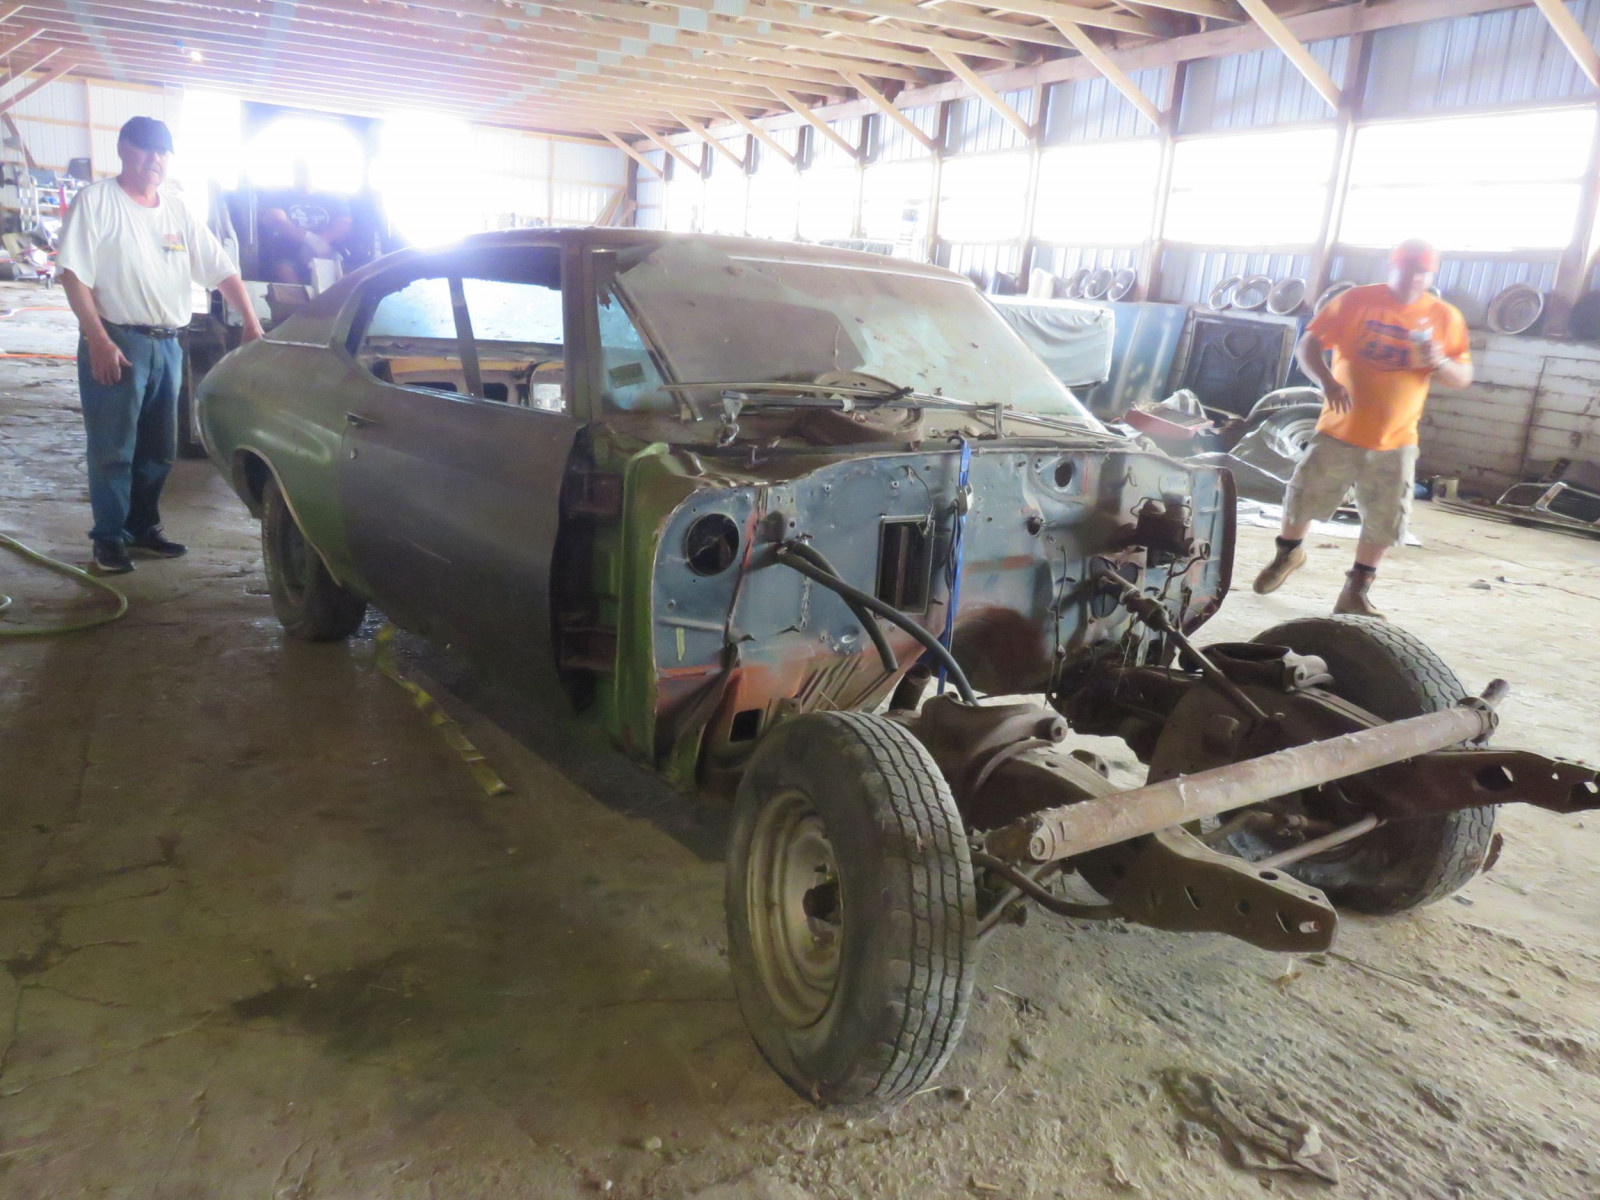 1971 Chevrolet Chevelle Rolling Body for Project - Image 3